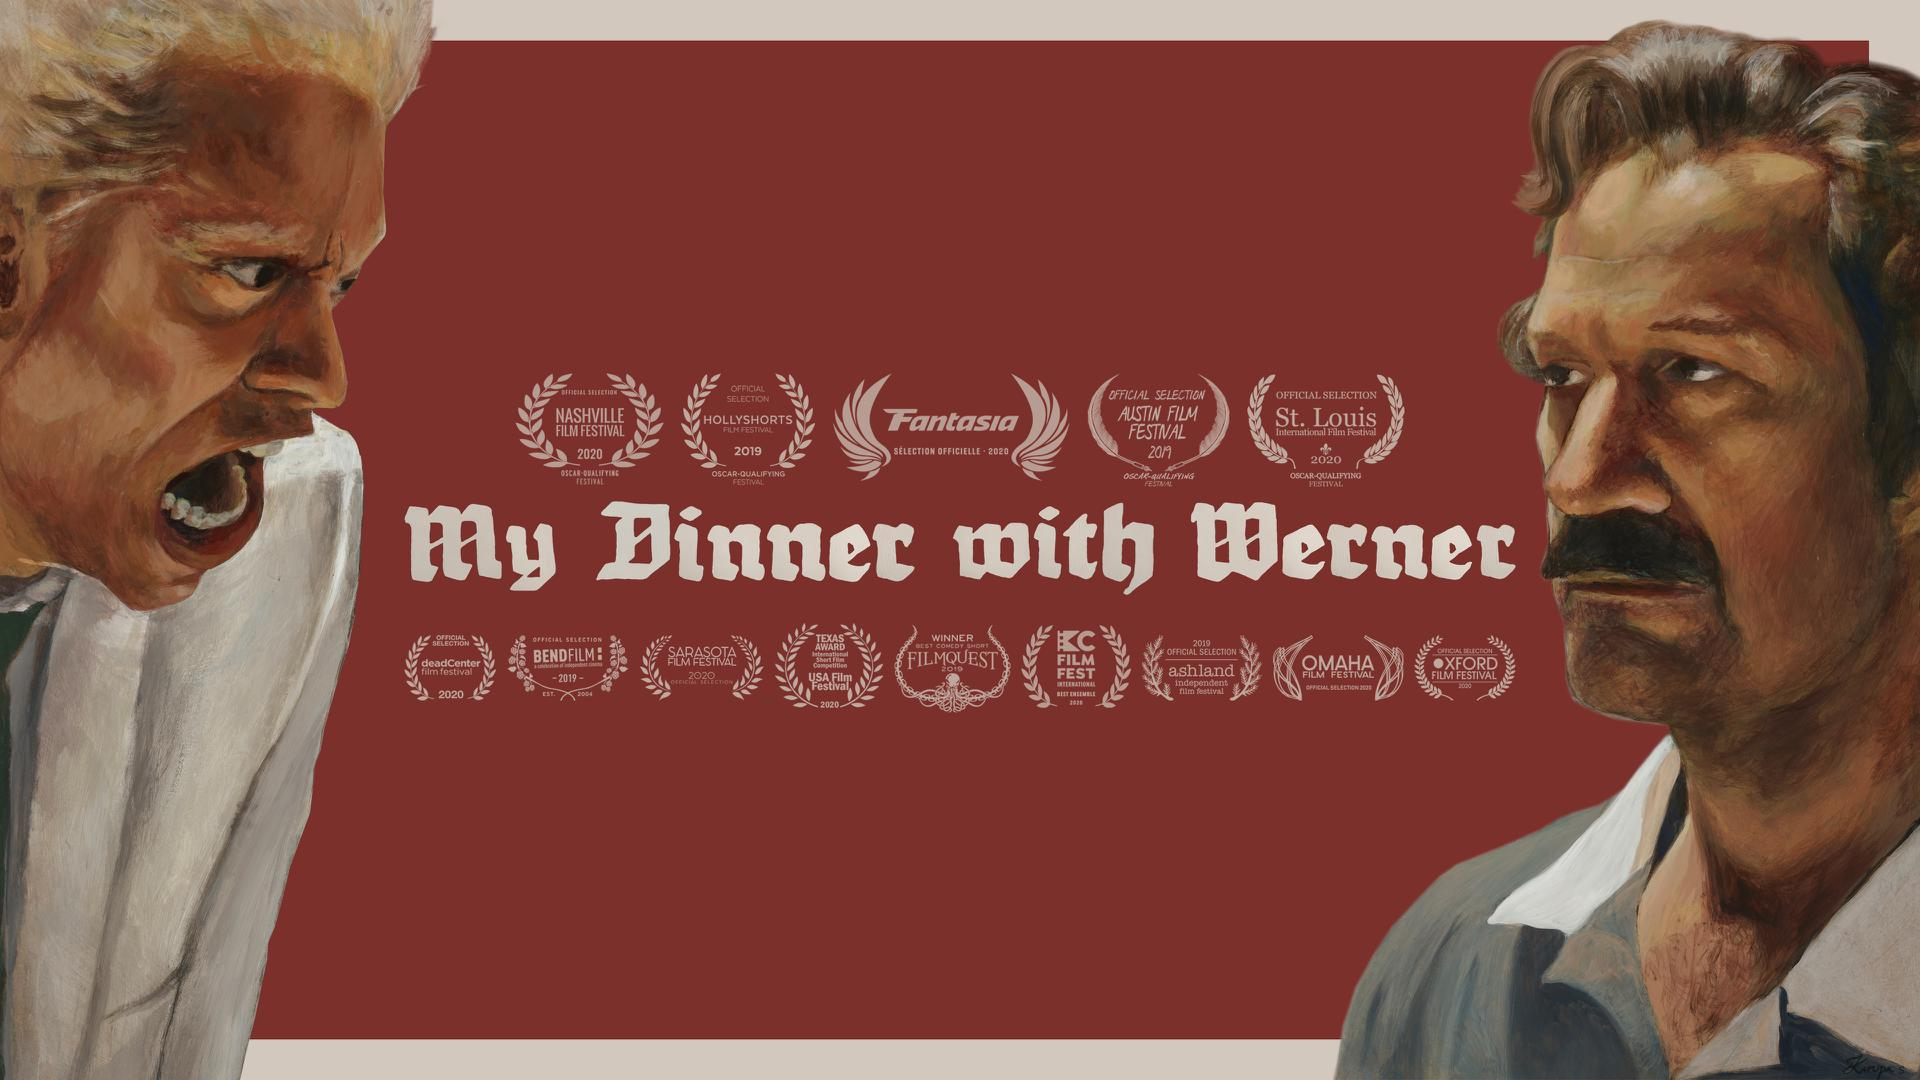 My Dinner With Werner